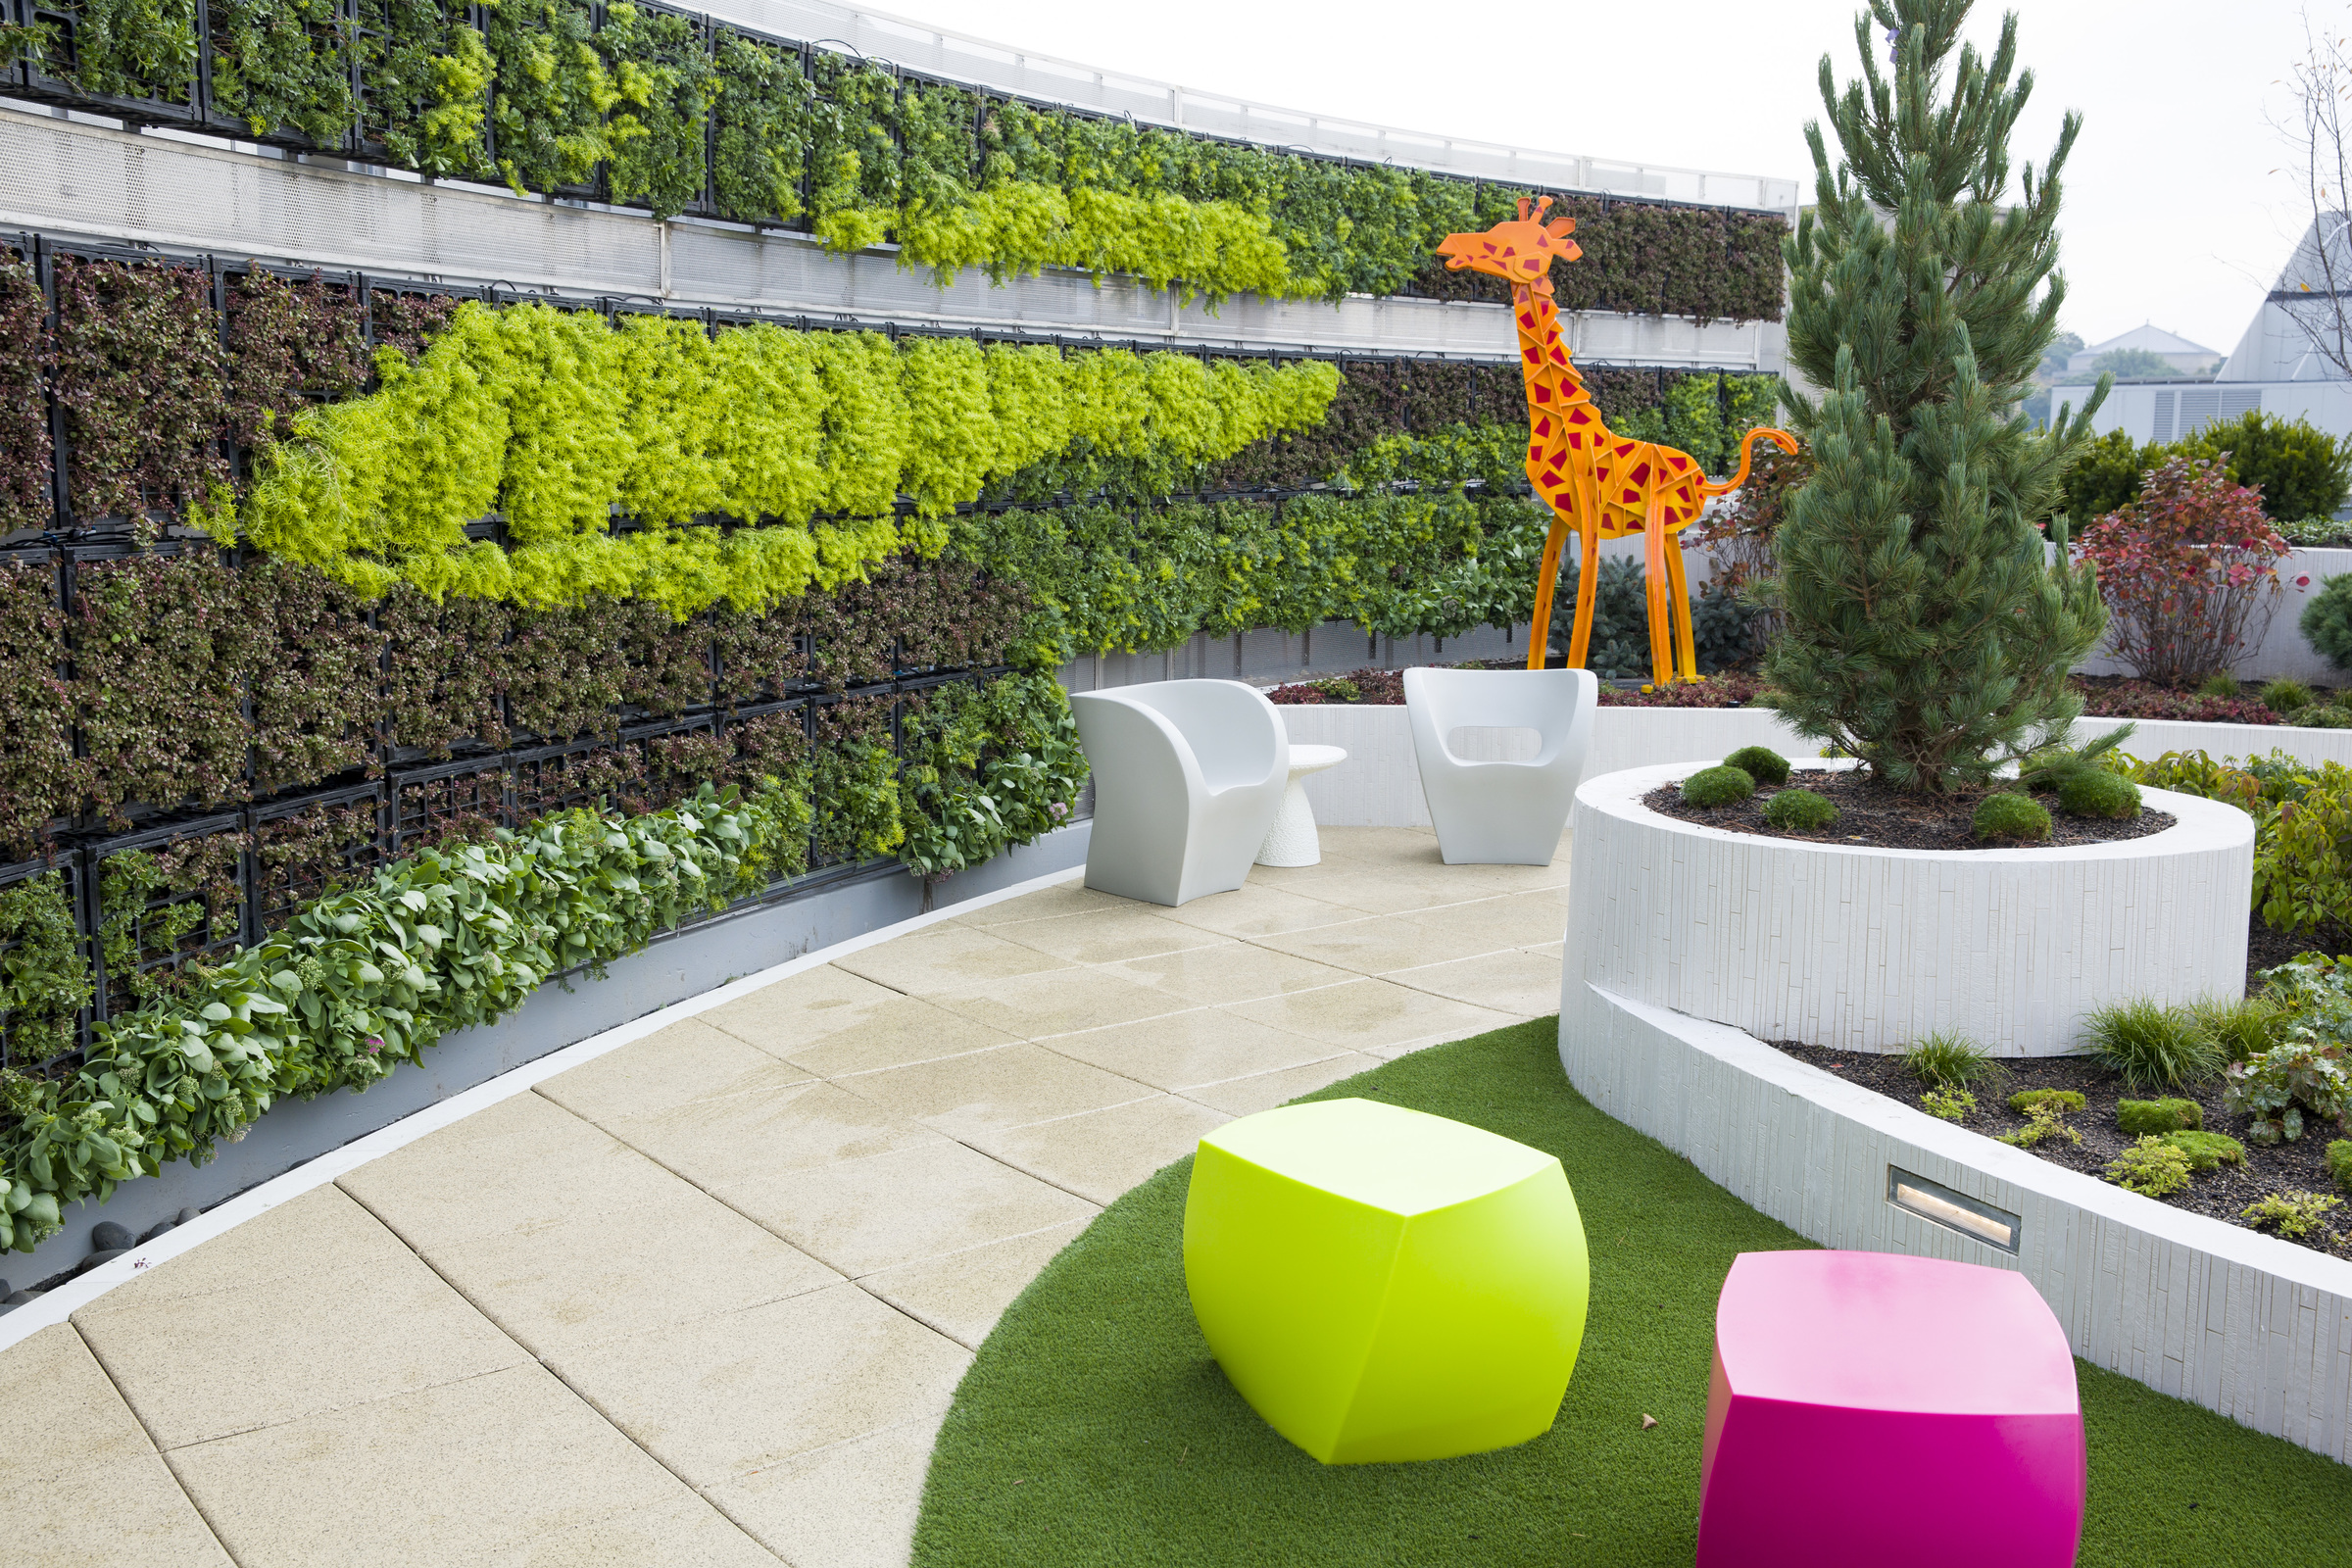 a rooftop garden with bright colors and a large decorative giraffe